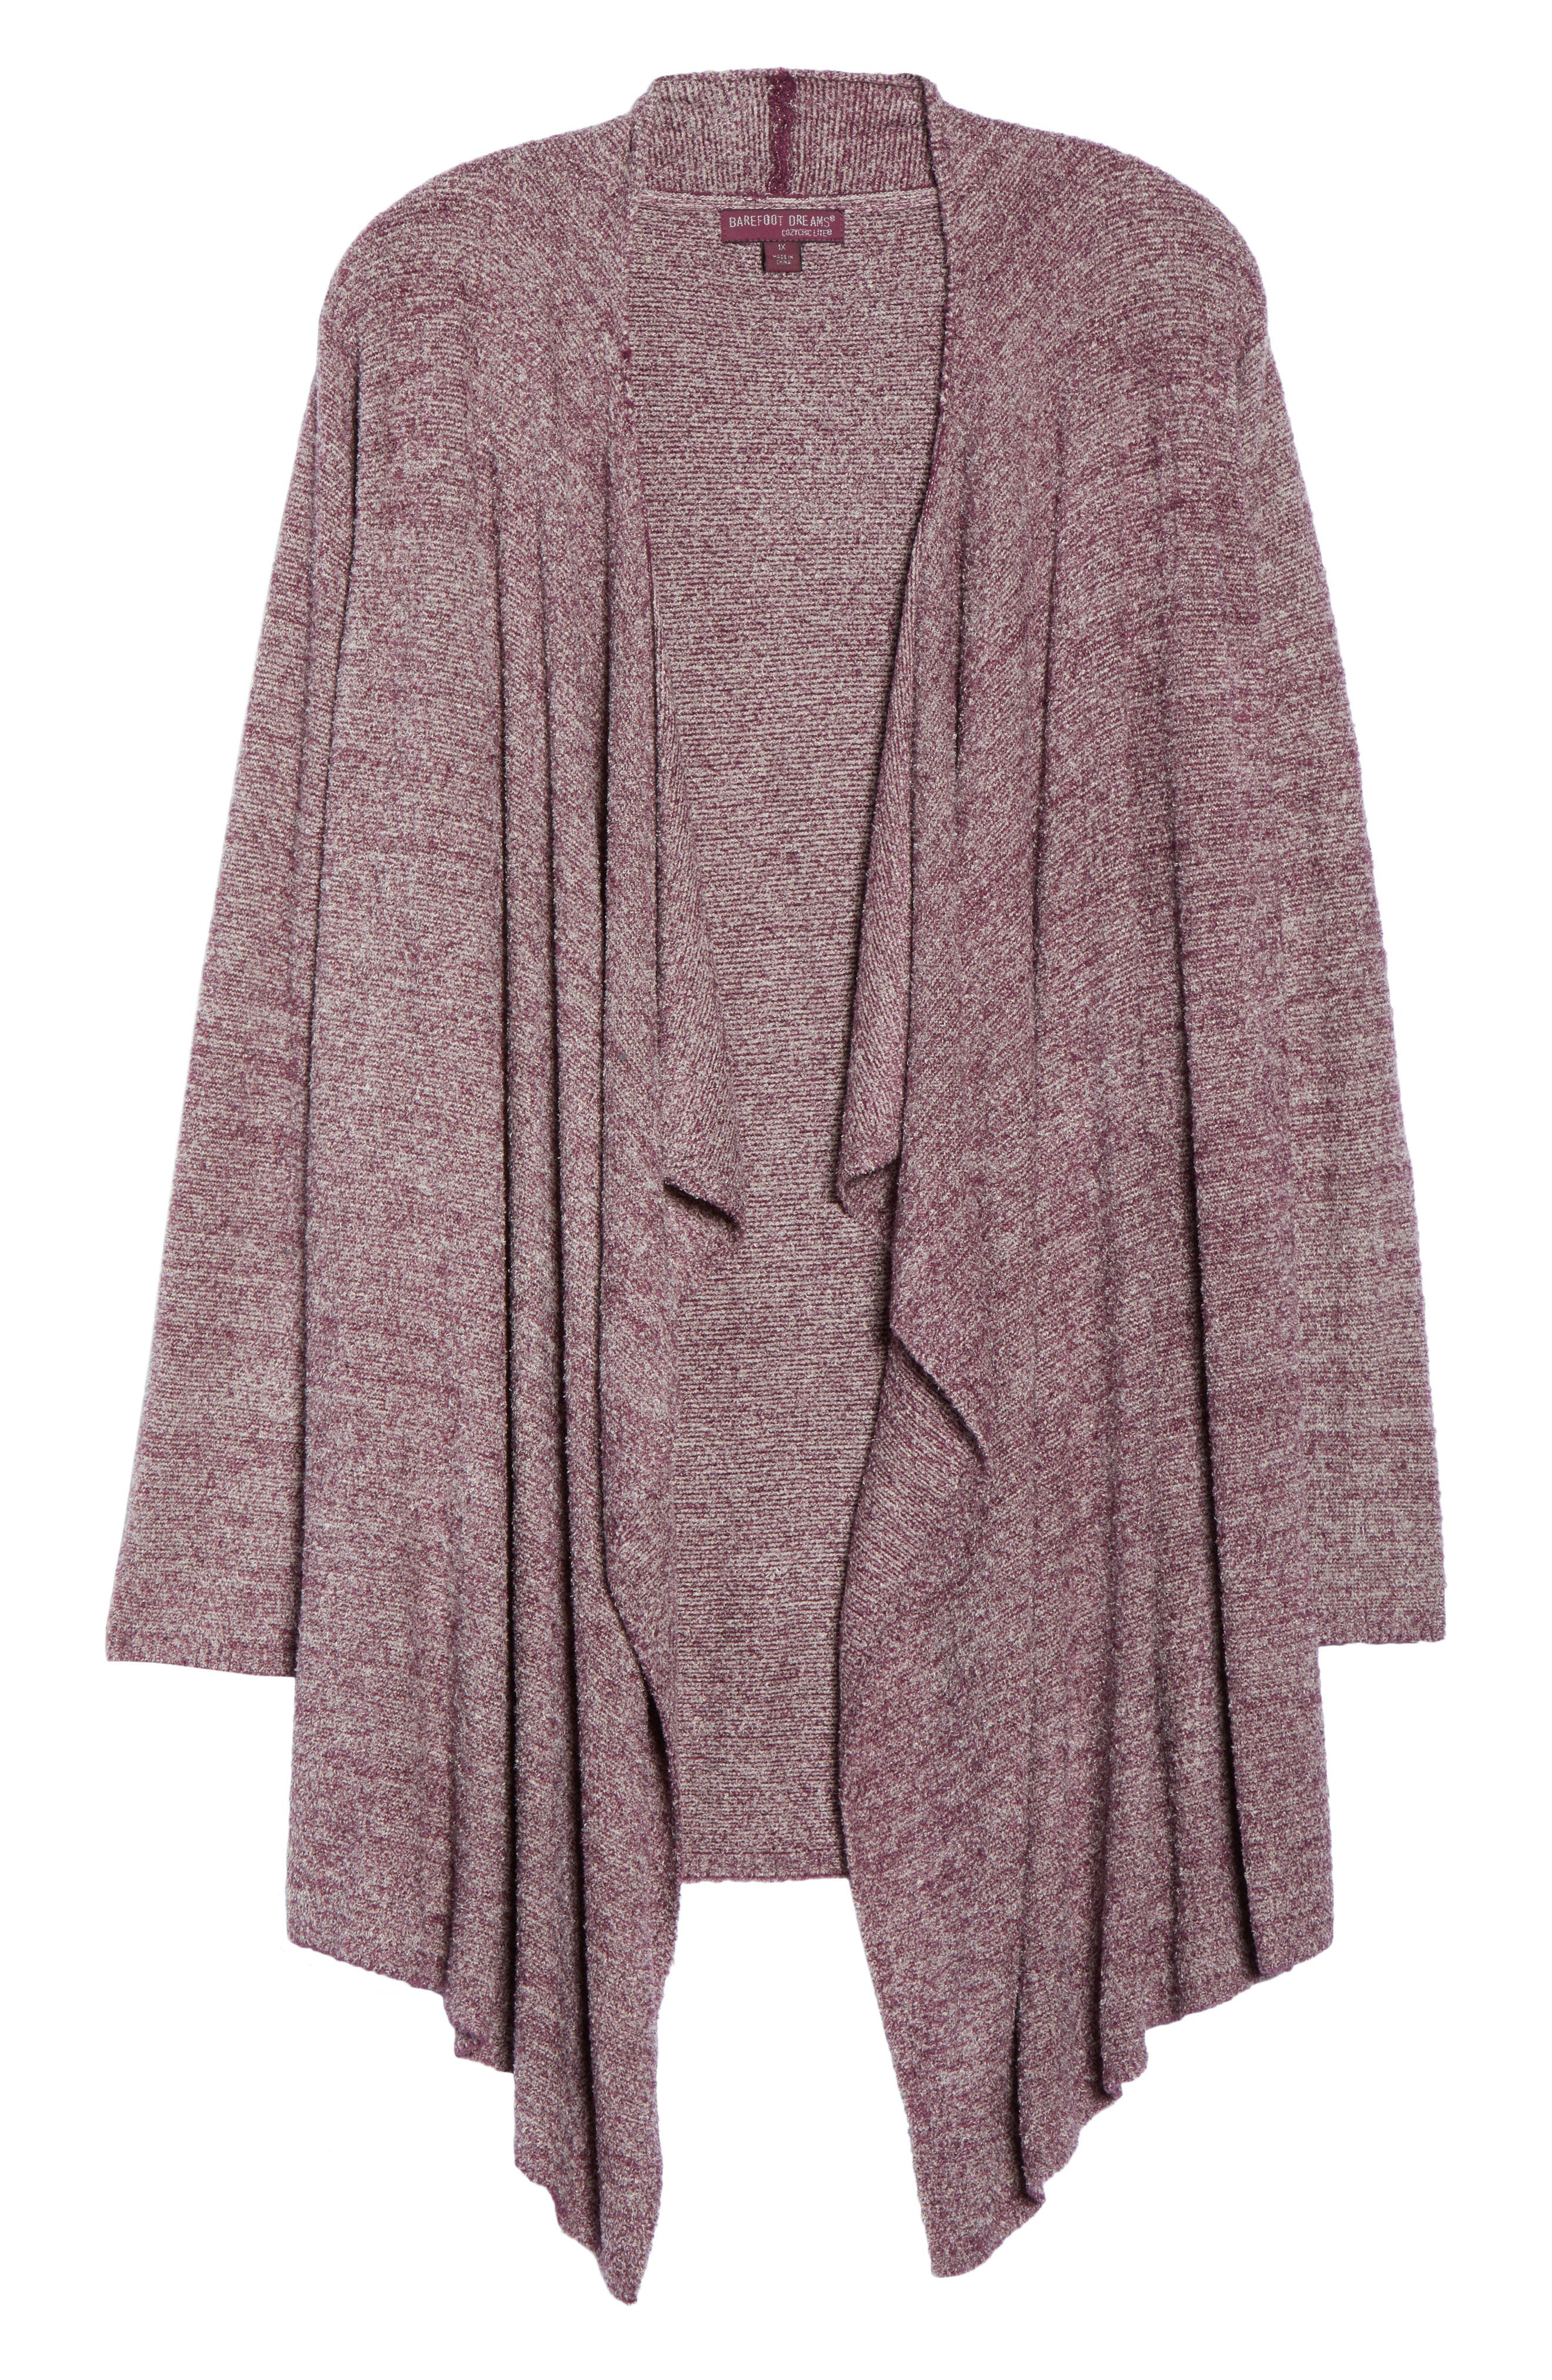 CozyChic Lite<sup>®</sup> Calypso Wrap Cardigan,                             Alternate thumbnail 4, color,                             Burgundy/ Stone